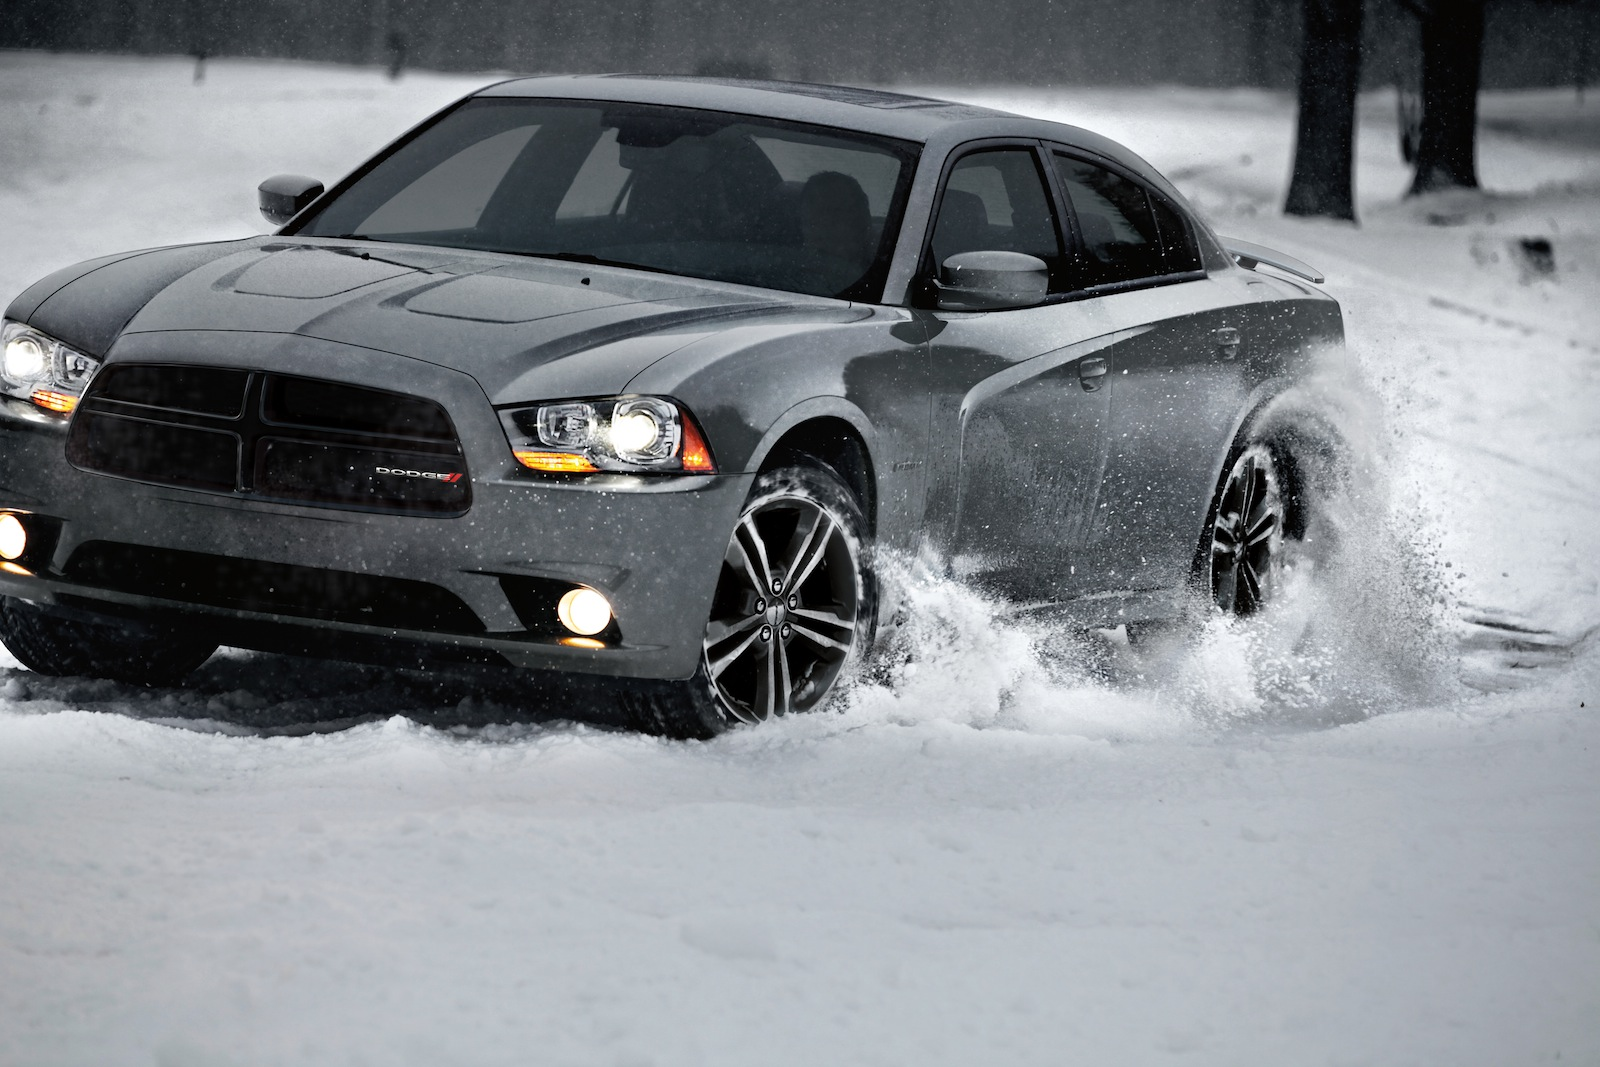 Magnum Rt Awd For Sale >> Winter Weather Car Prep Tips To Keep Your Family Safe On The Road